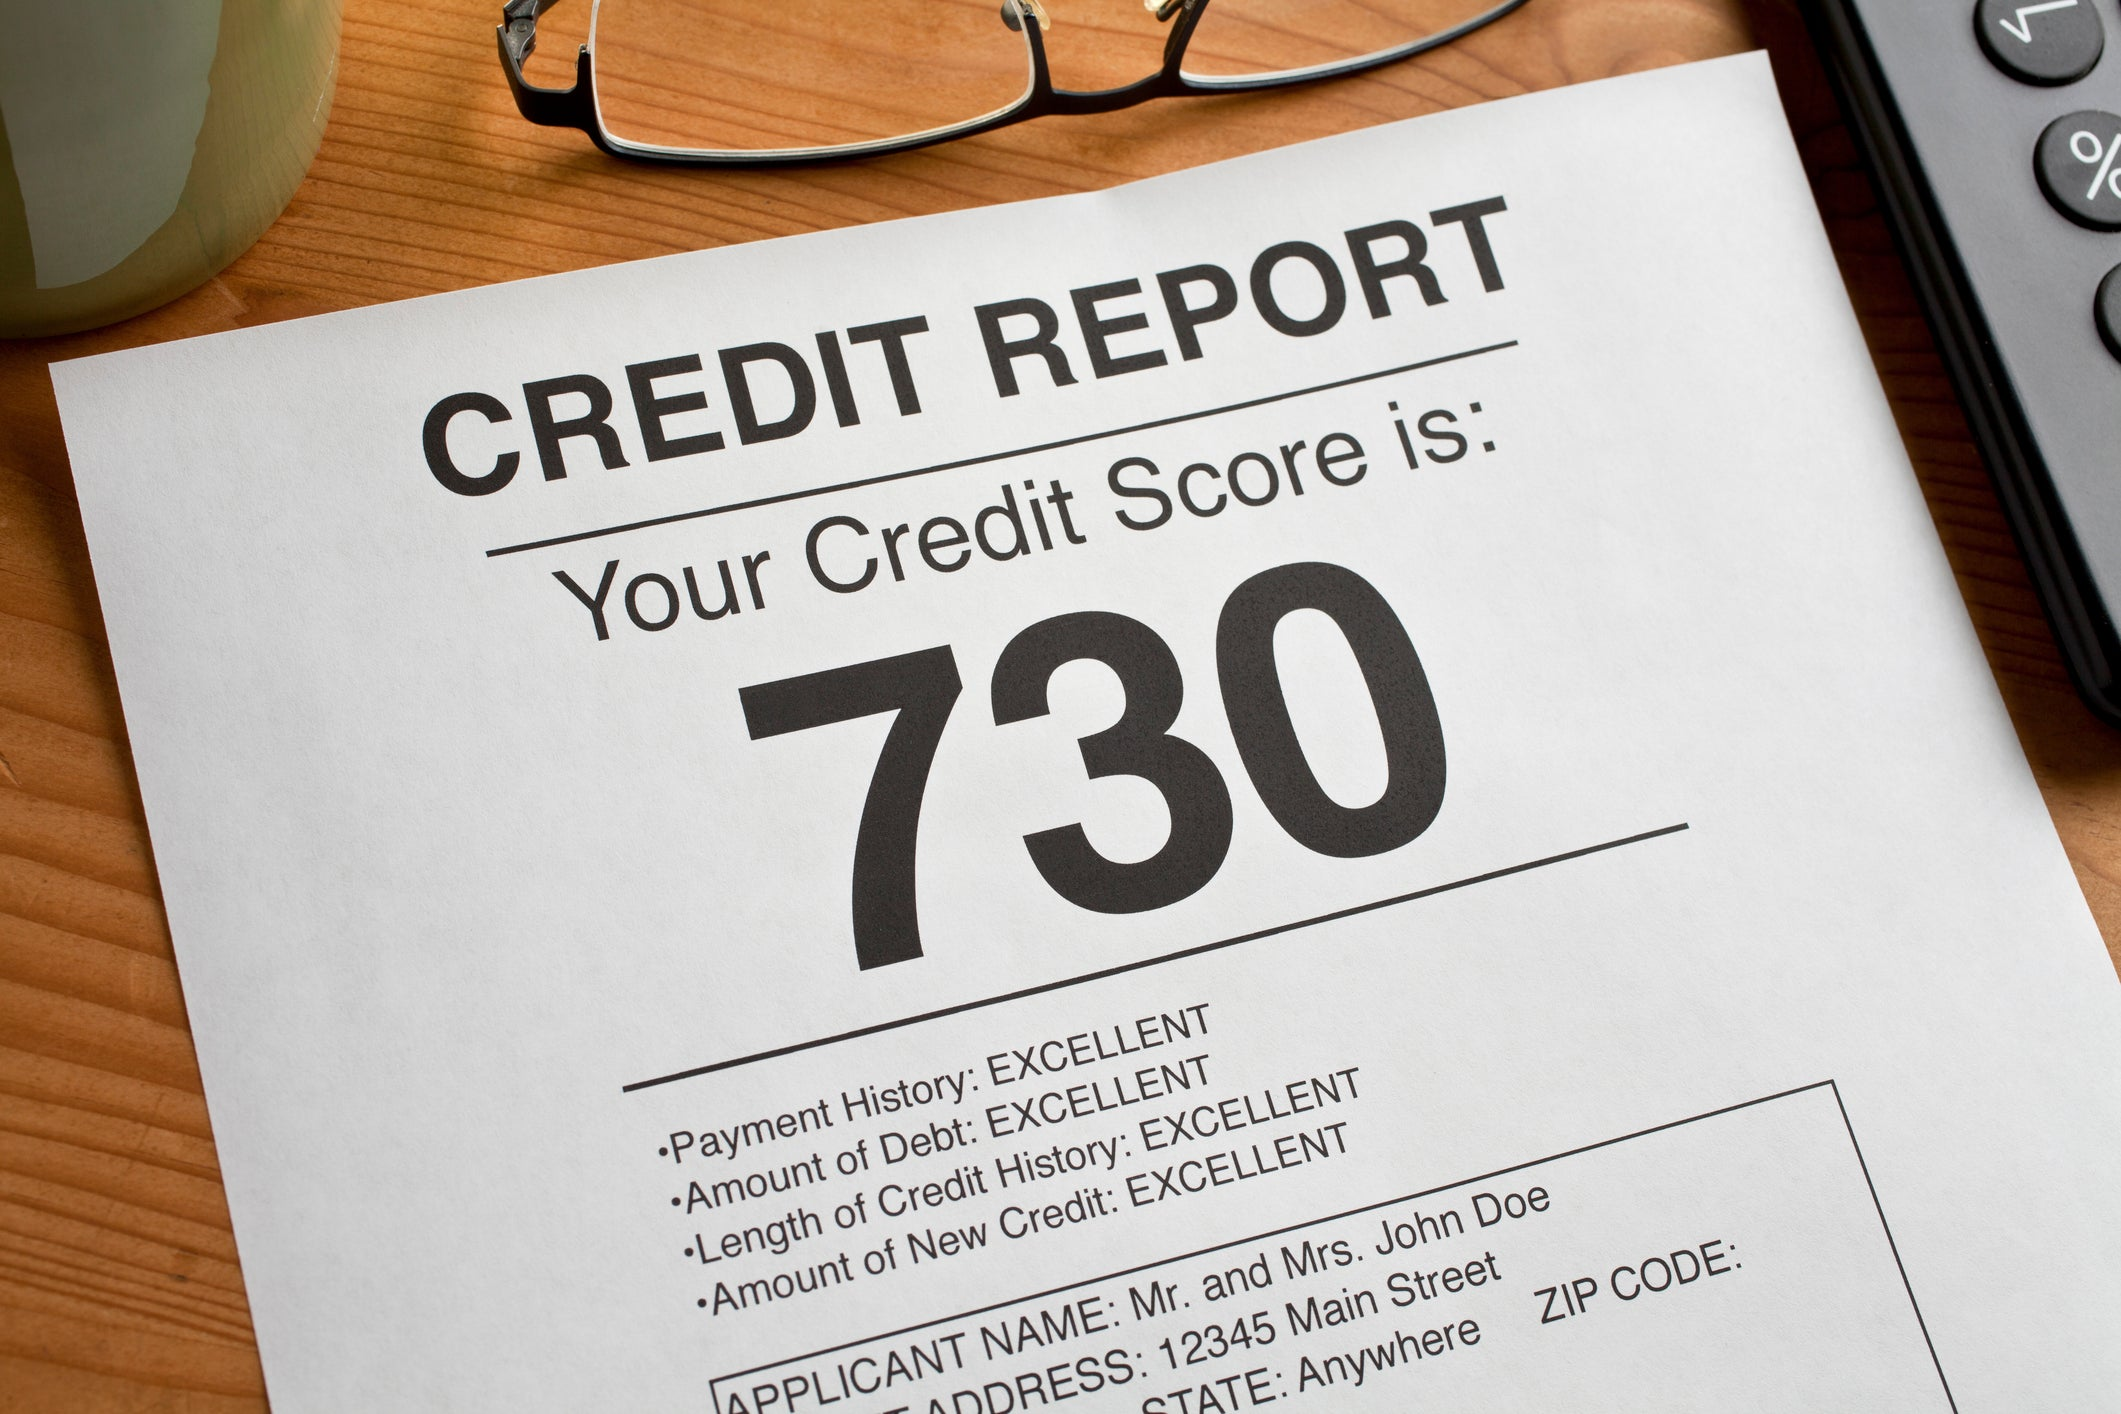 730 Credit Score >> 3 Of The Best Credit Score Tips The Motley Fool